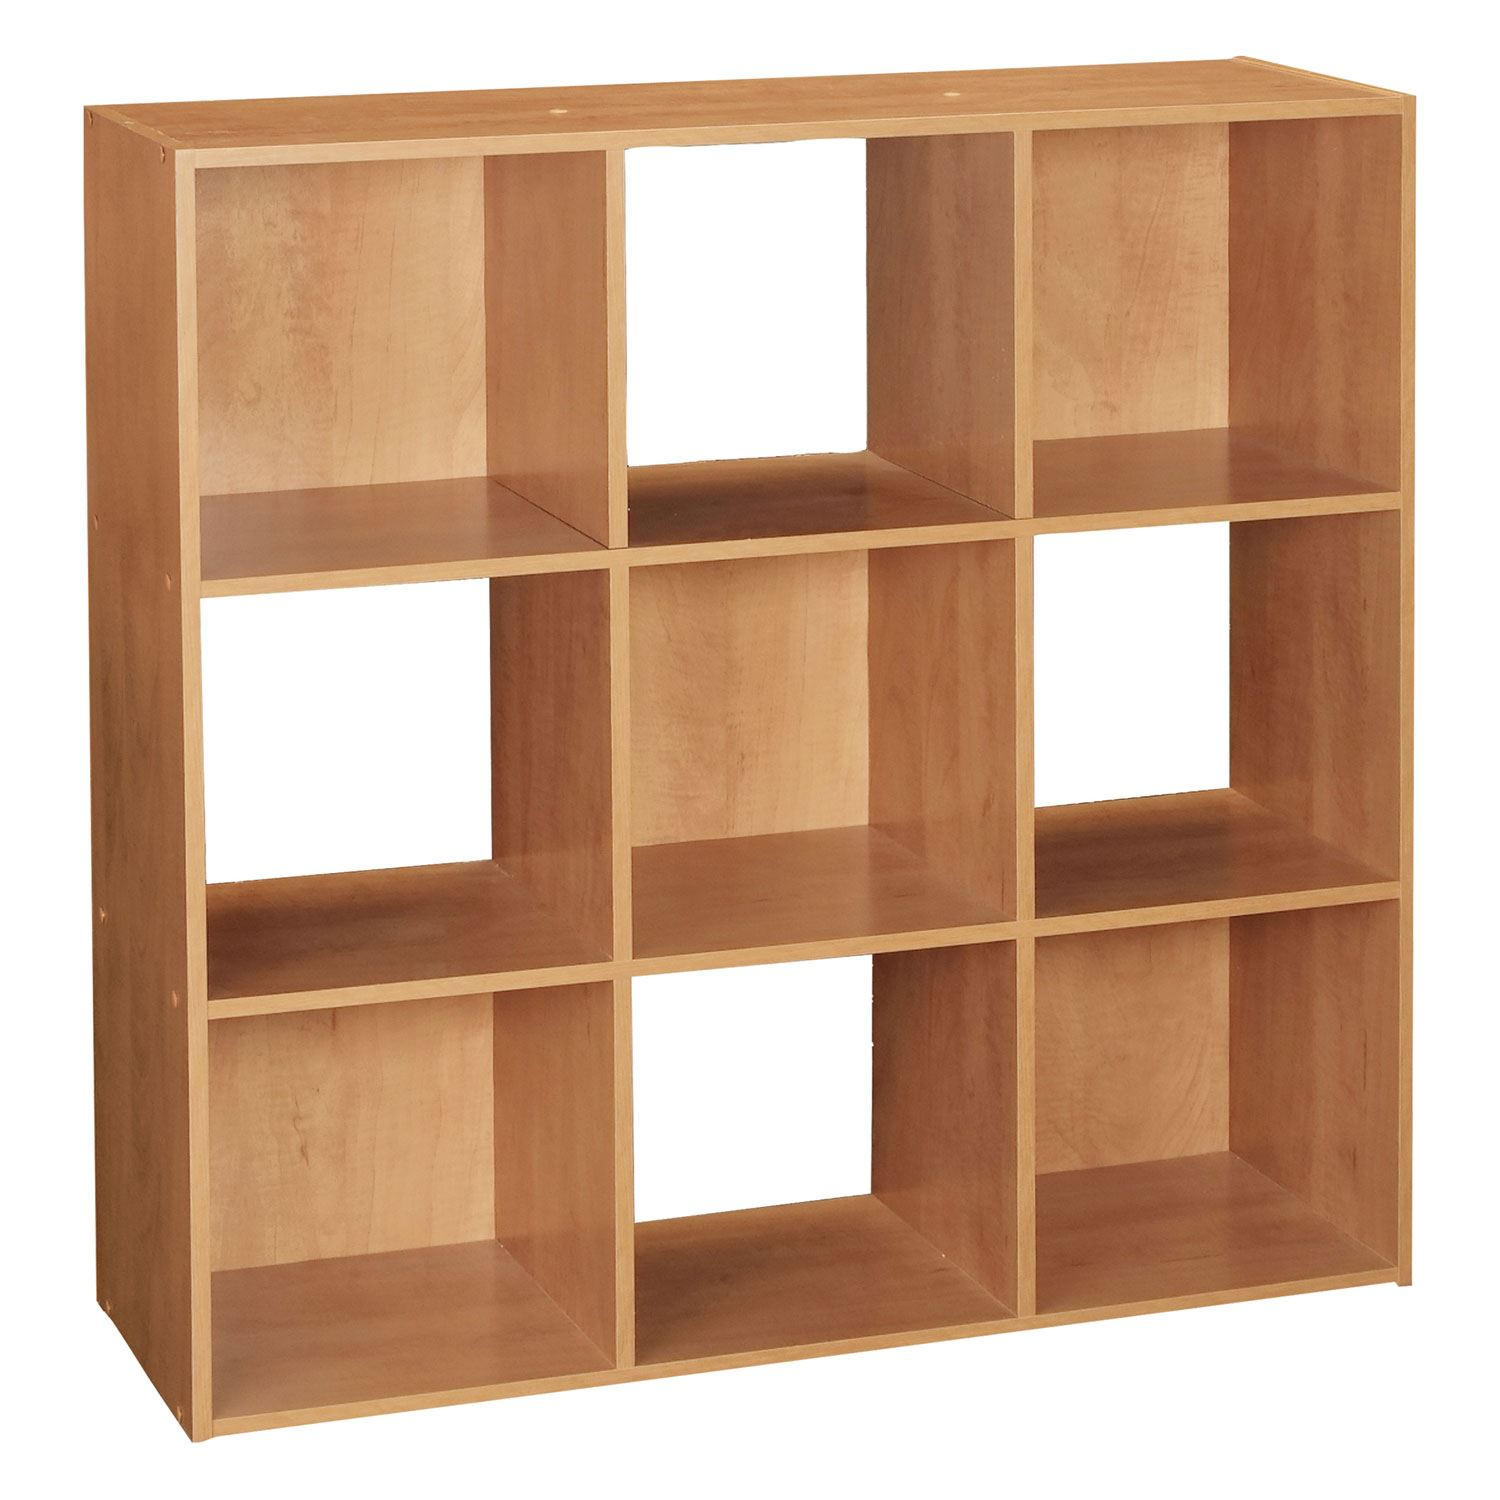 Wonderful image of Black/White/ Natural 3 Tier 9 Cube Wooden Bookcase Display Storage  with #501F0C color and 1500x1500 pixels